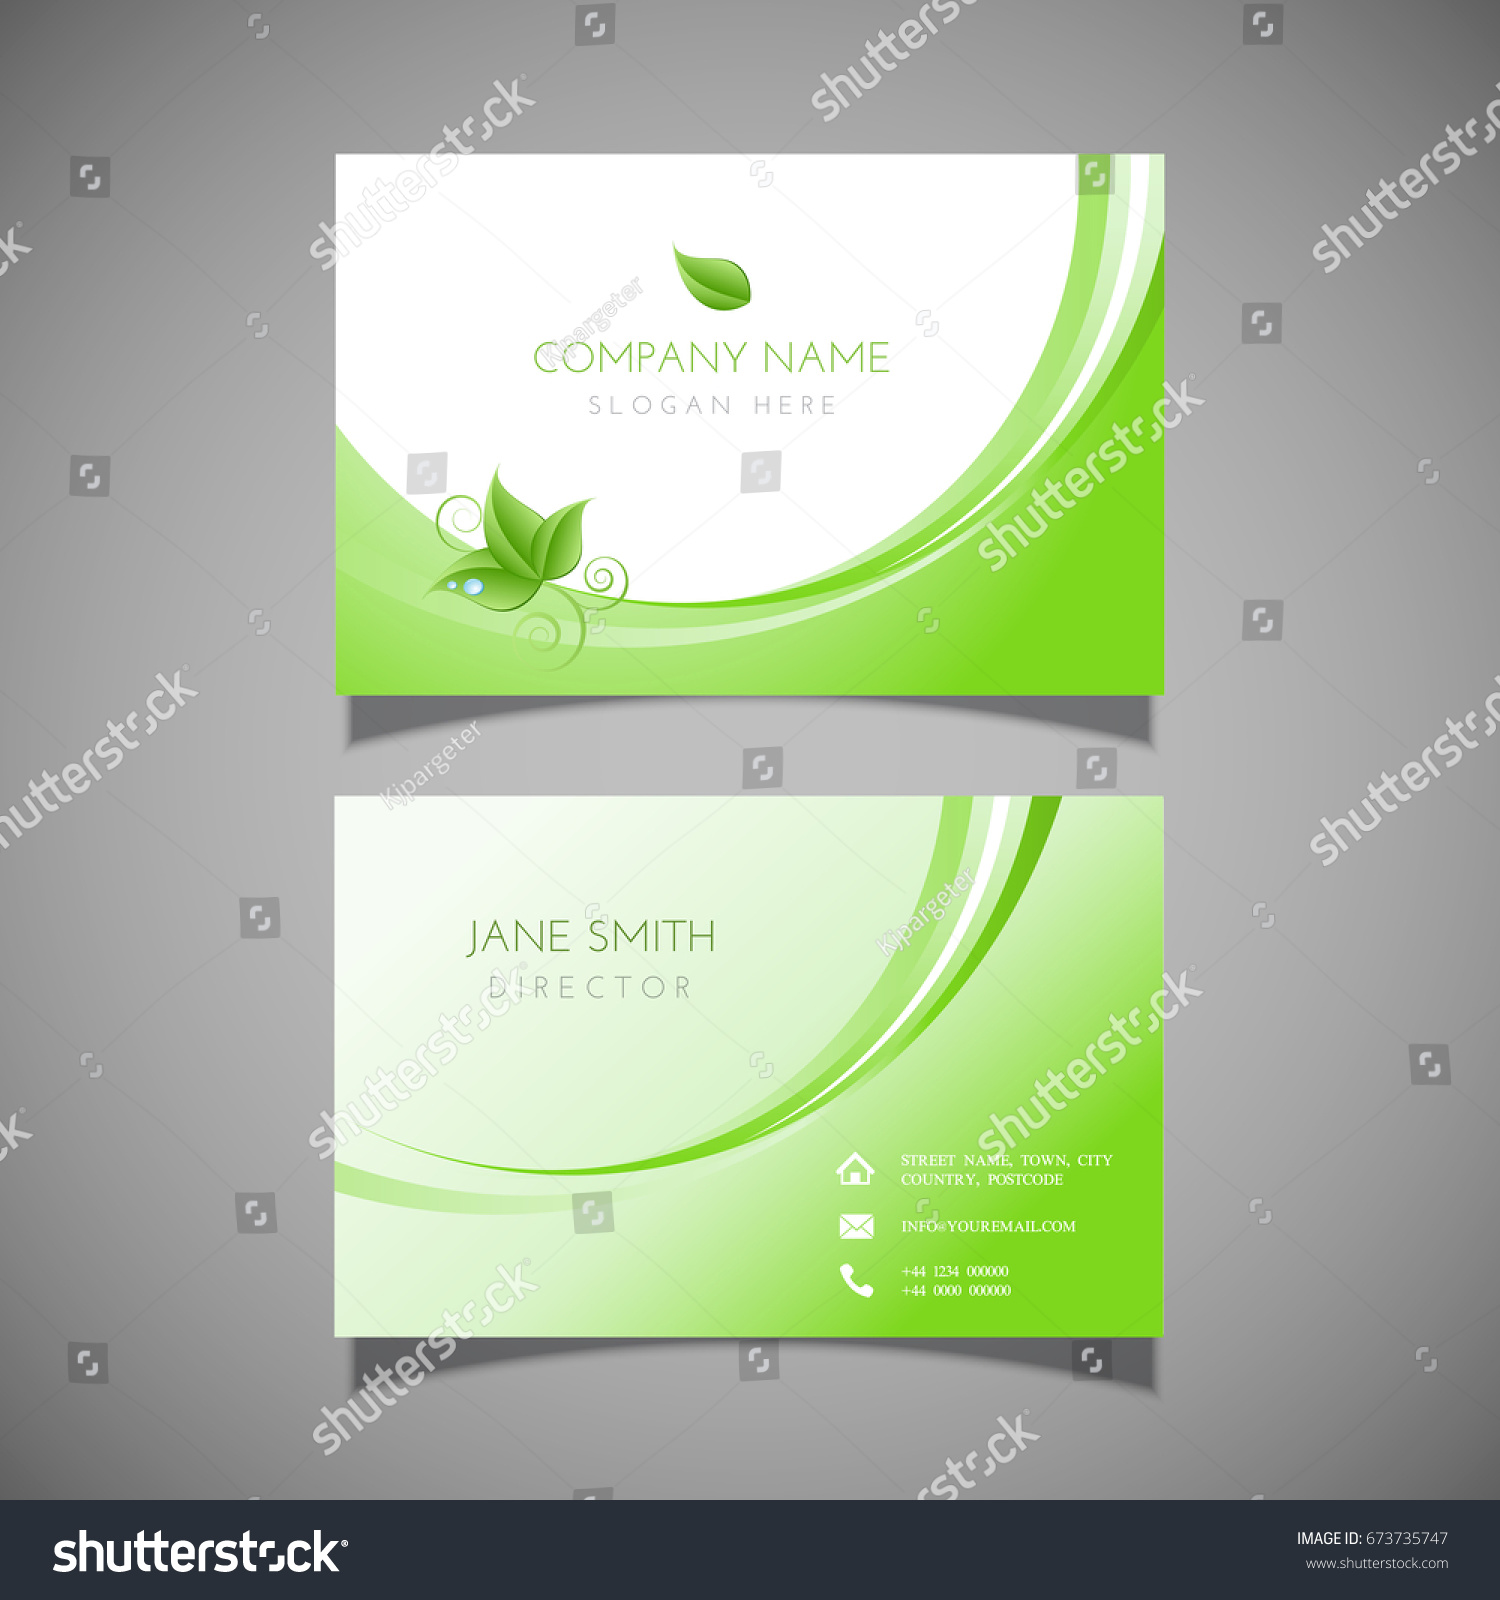 Business Card Leaf Design Ideal Health Stock Vector 673735747 ...